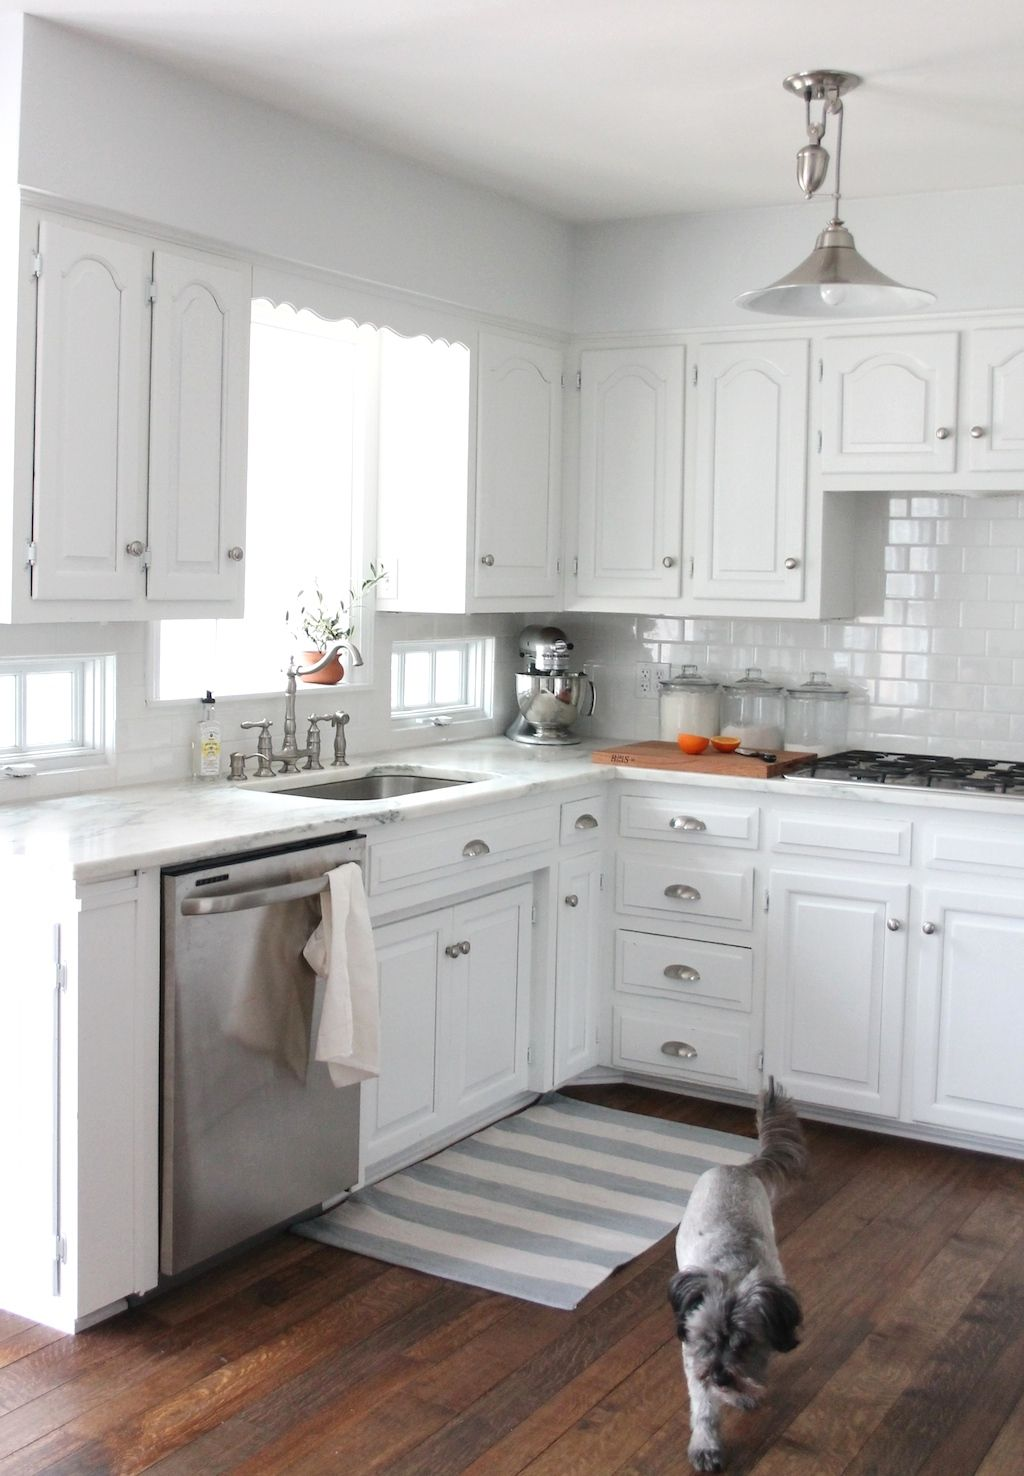 We did it our kitchen remodel easy diy projects and for Diy small kitchen remodel